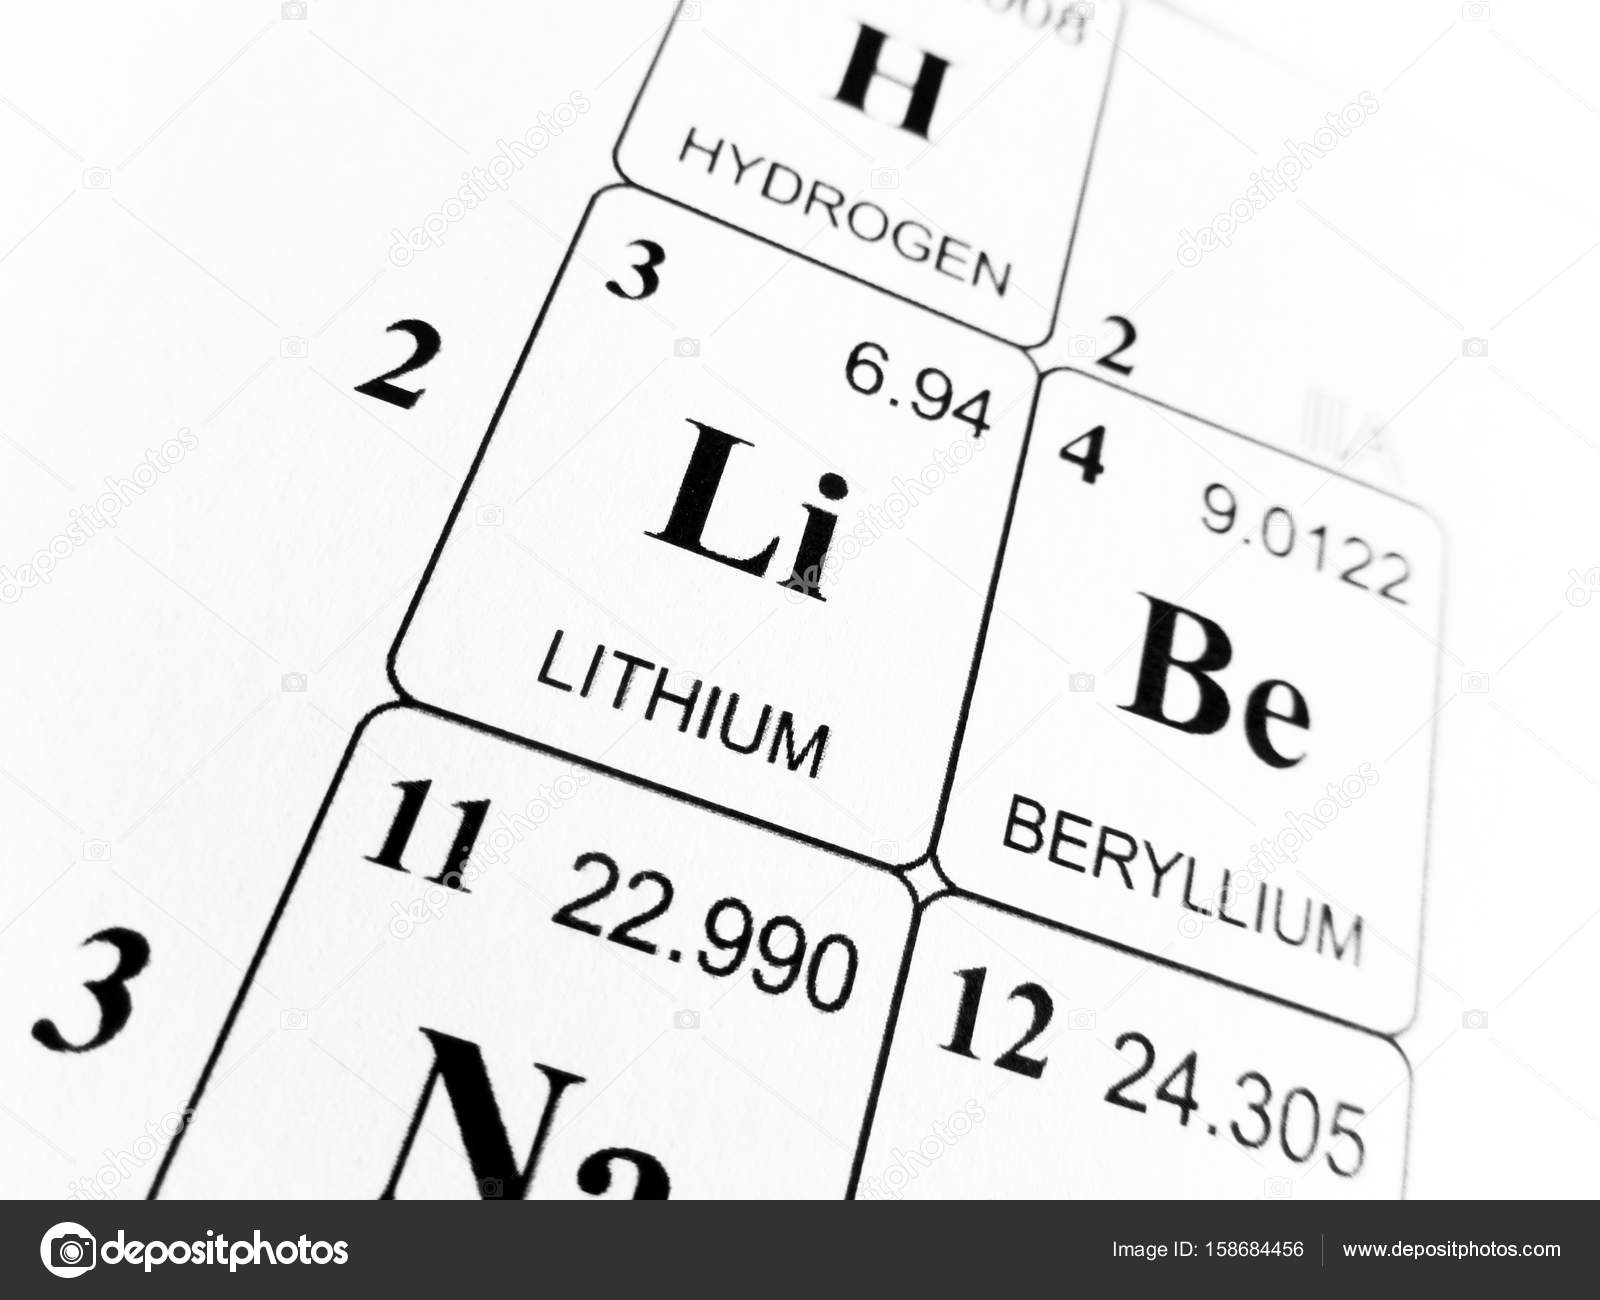 Lithium on the periodic table of the elements stock photo lithium on the periodic table of the elements stock photo urtaz Gallery